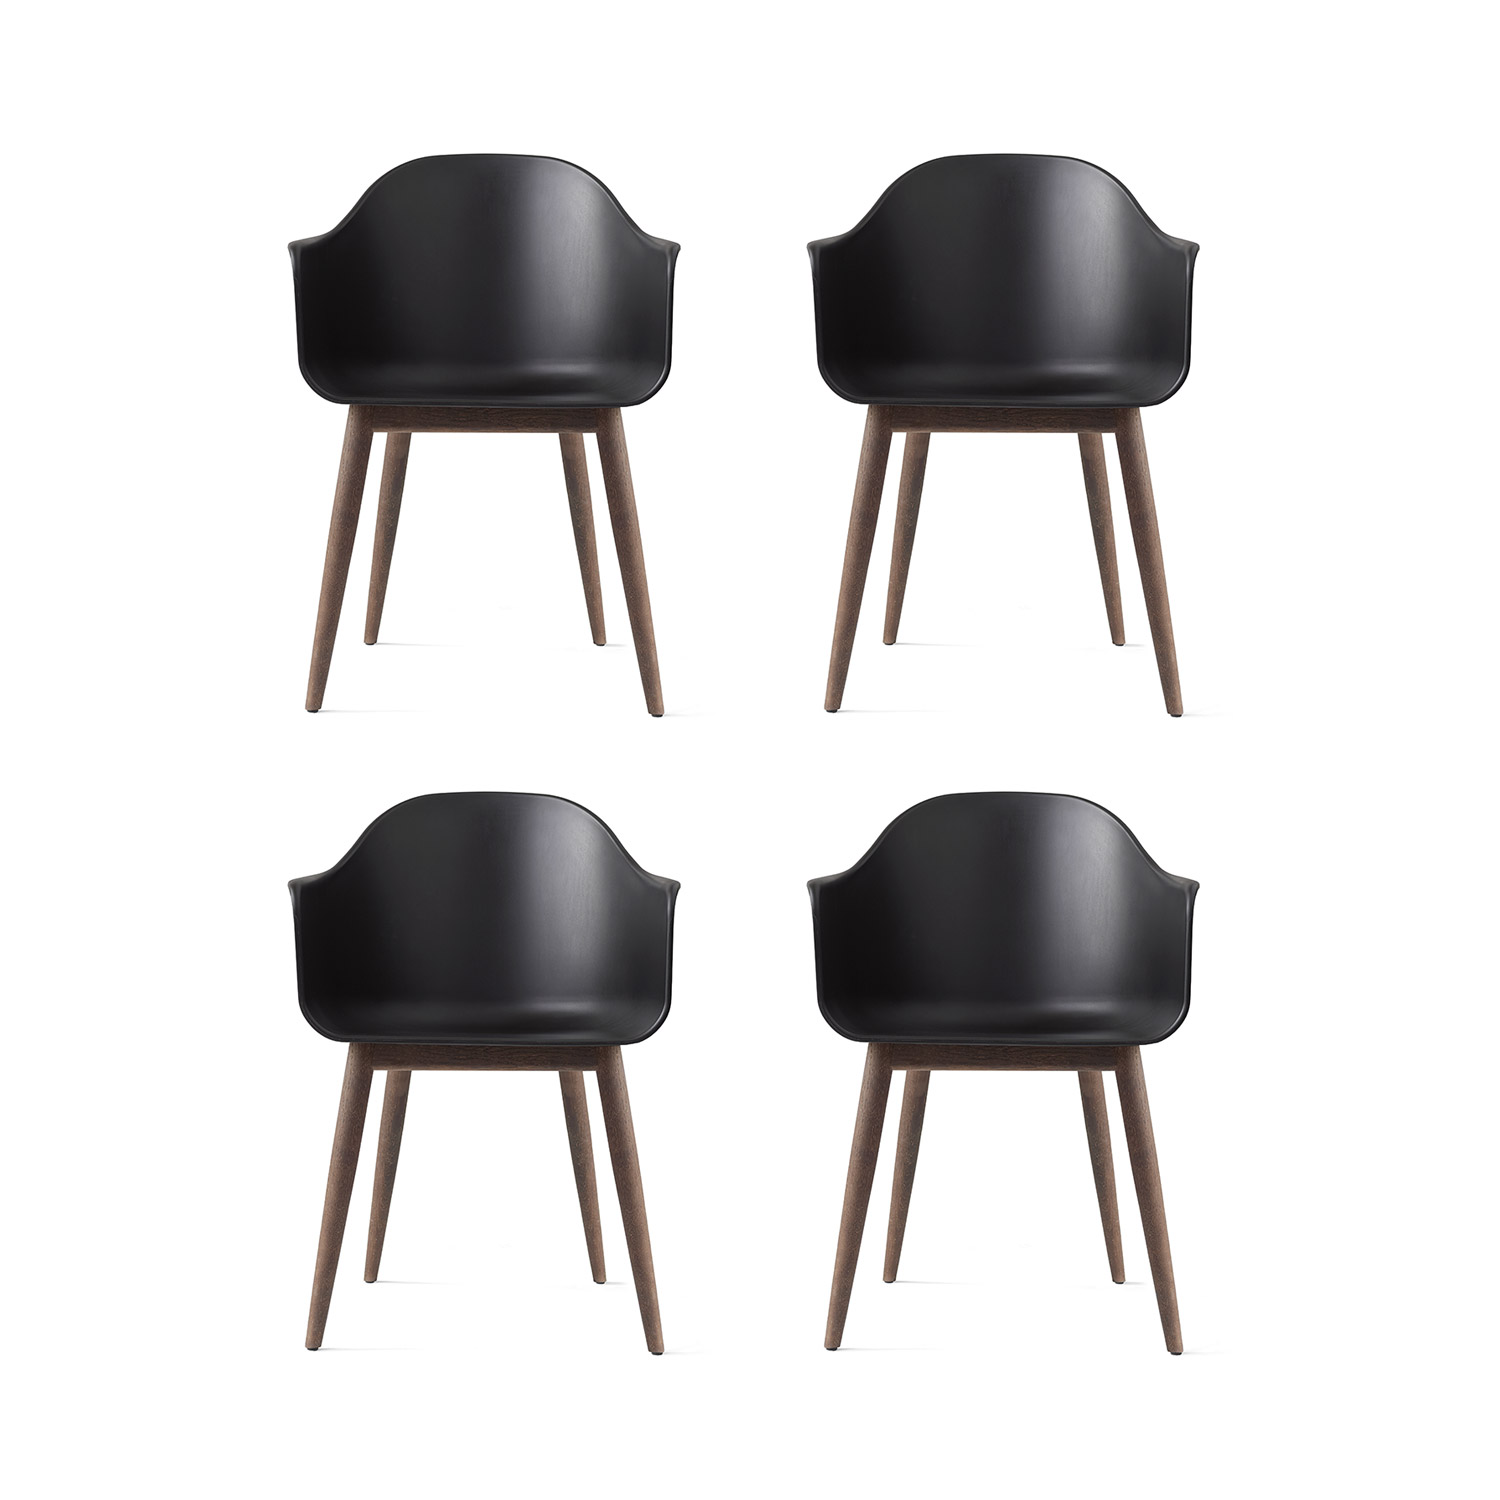 Harbour Chair 4-pack, sort/mørk eg